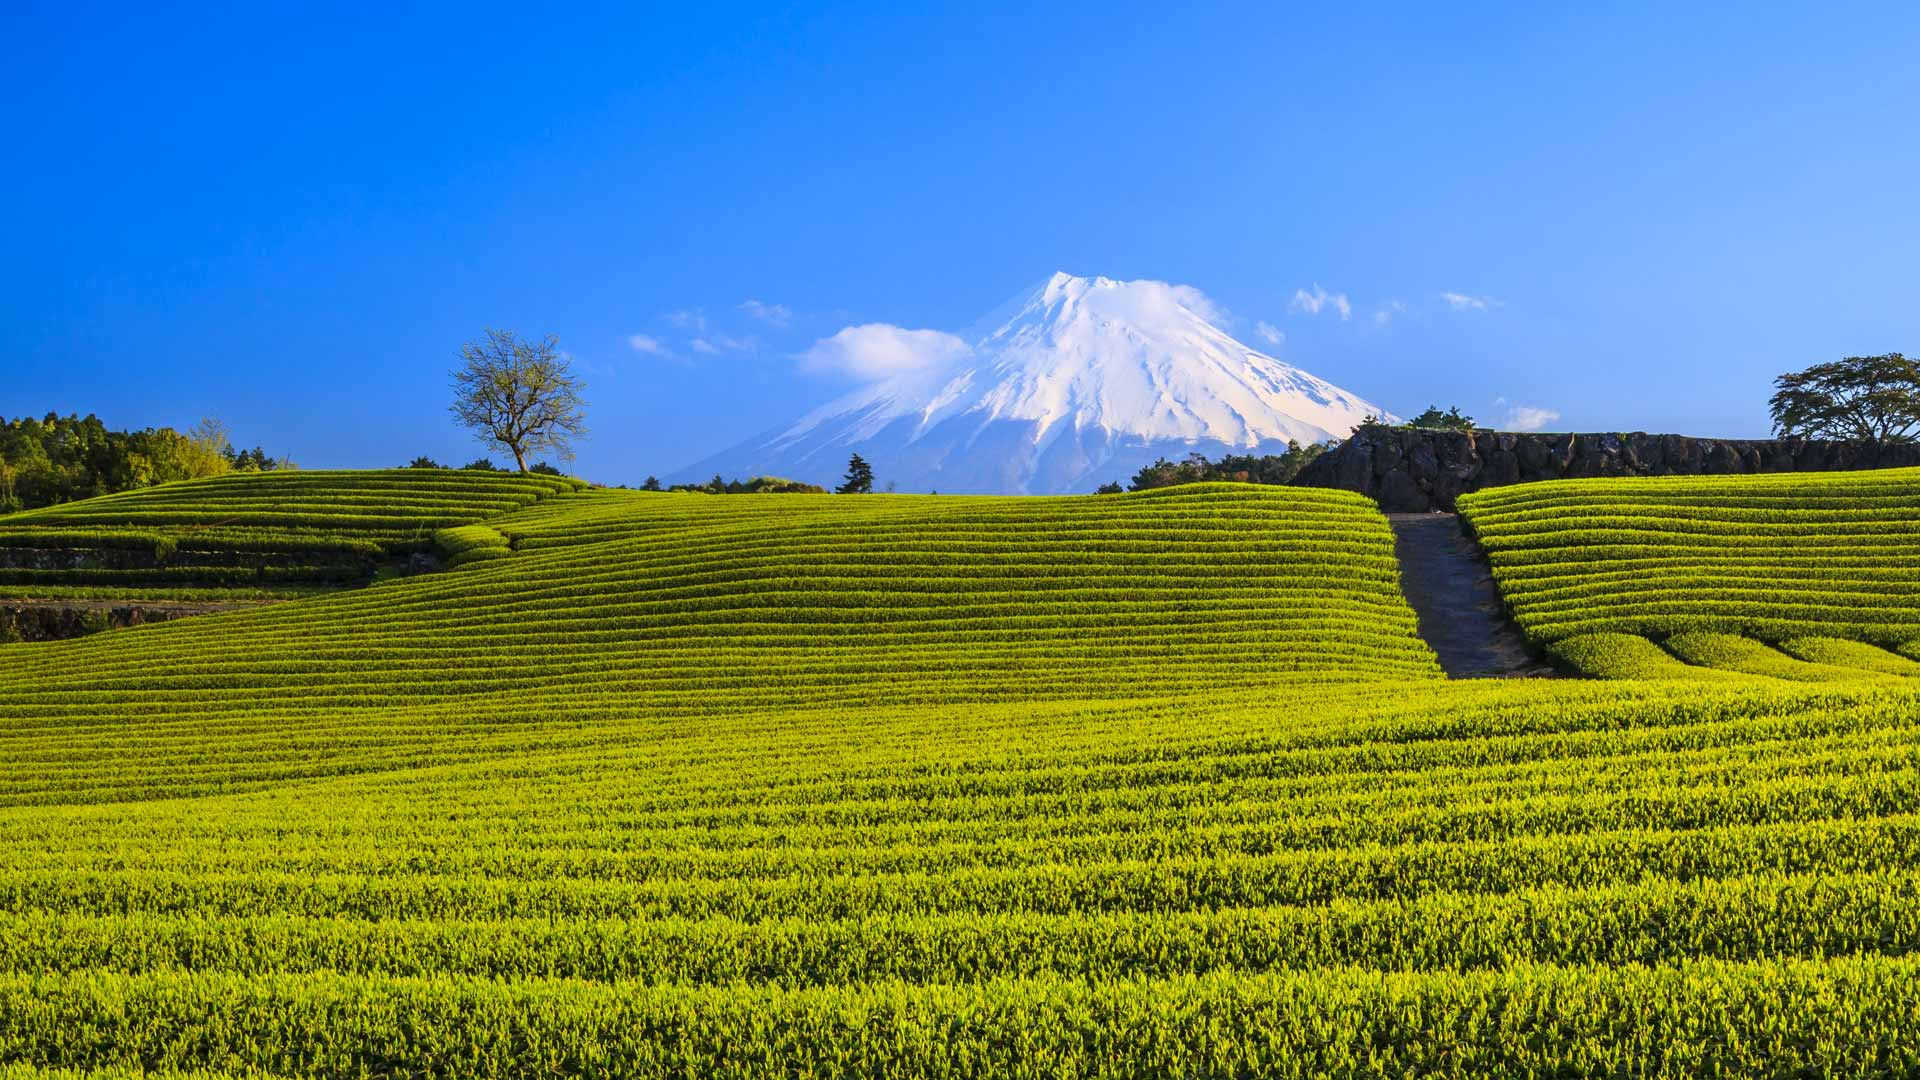 Green Tea Plantation And Mt Fuji Bing Wallpaper Download